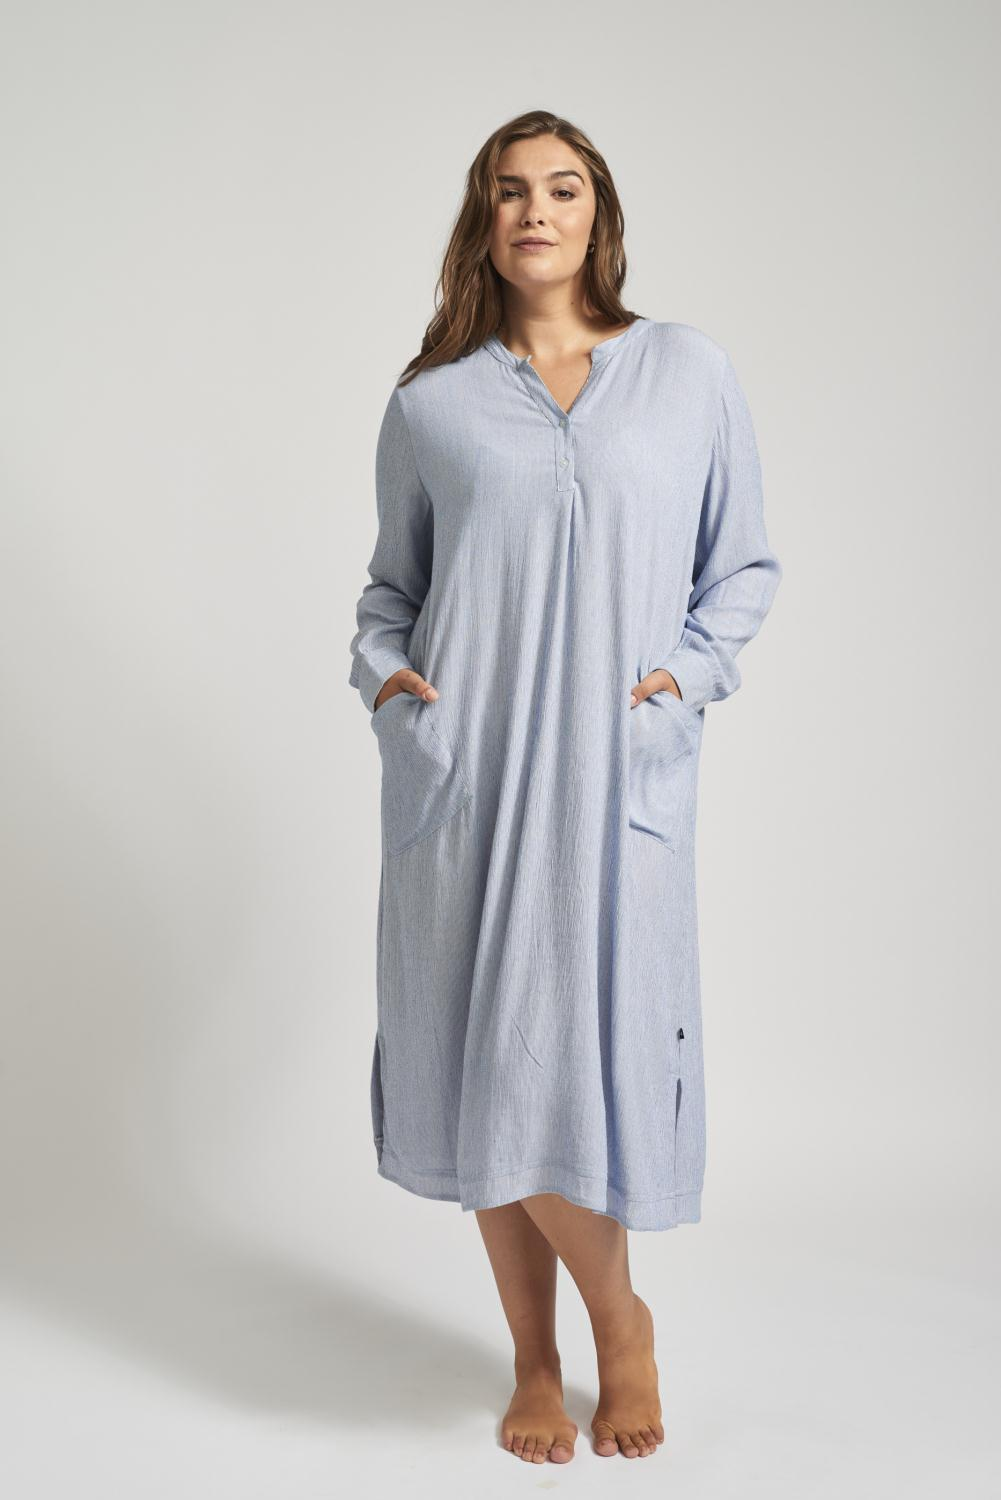 gallery-4533-for-AD5001